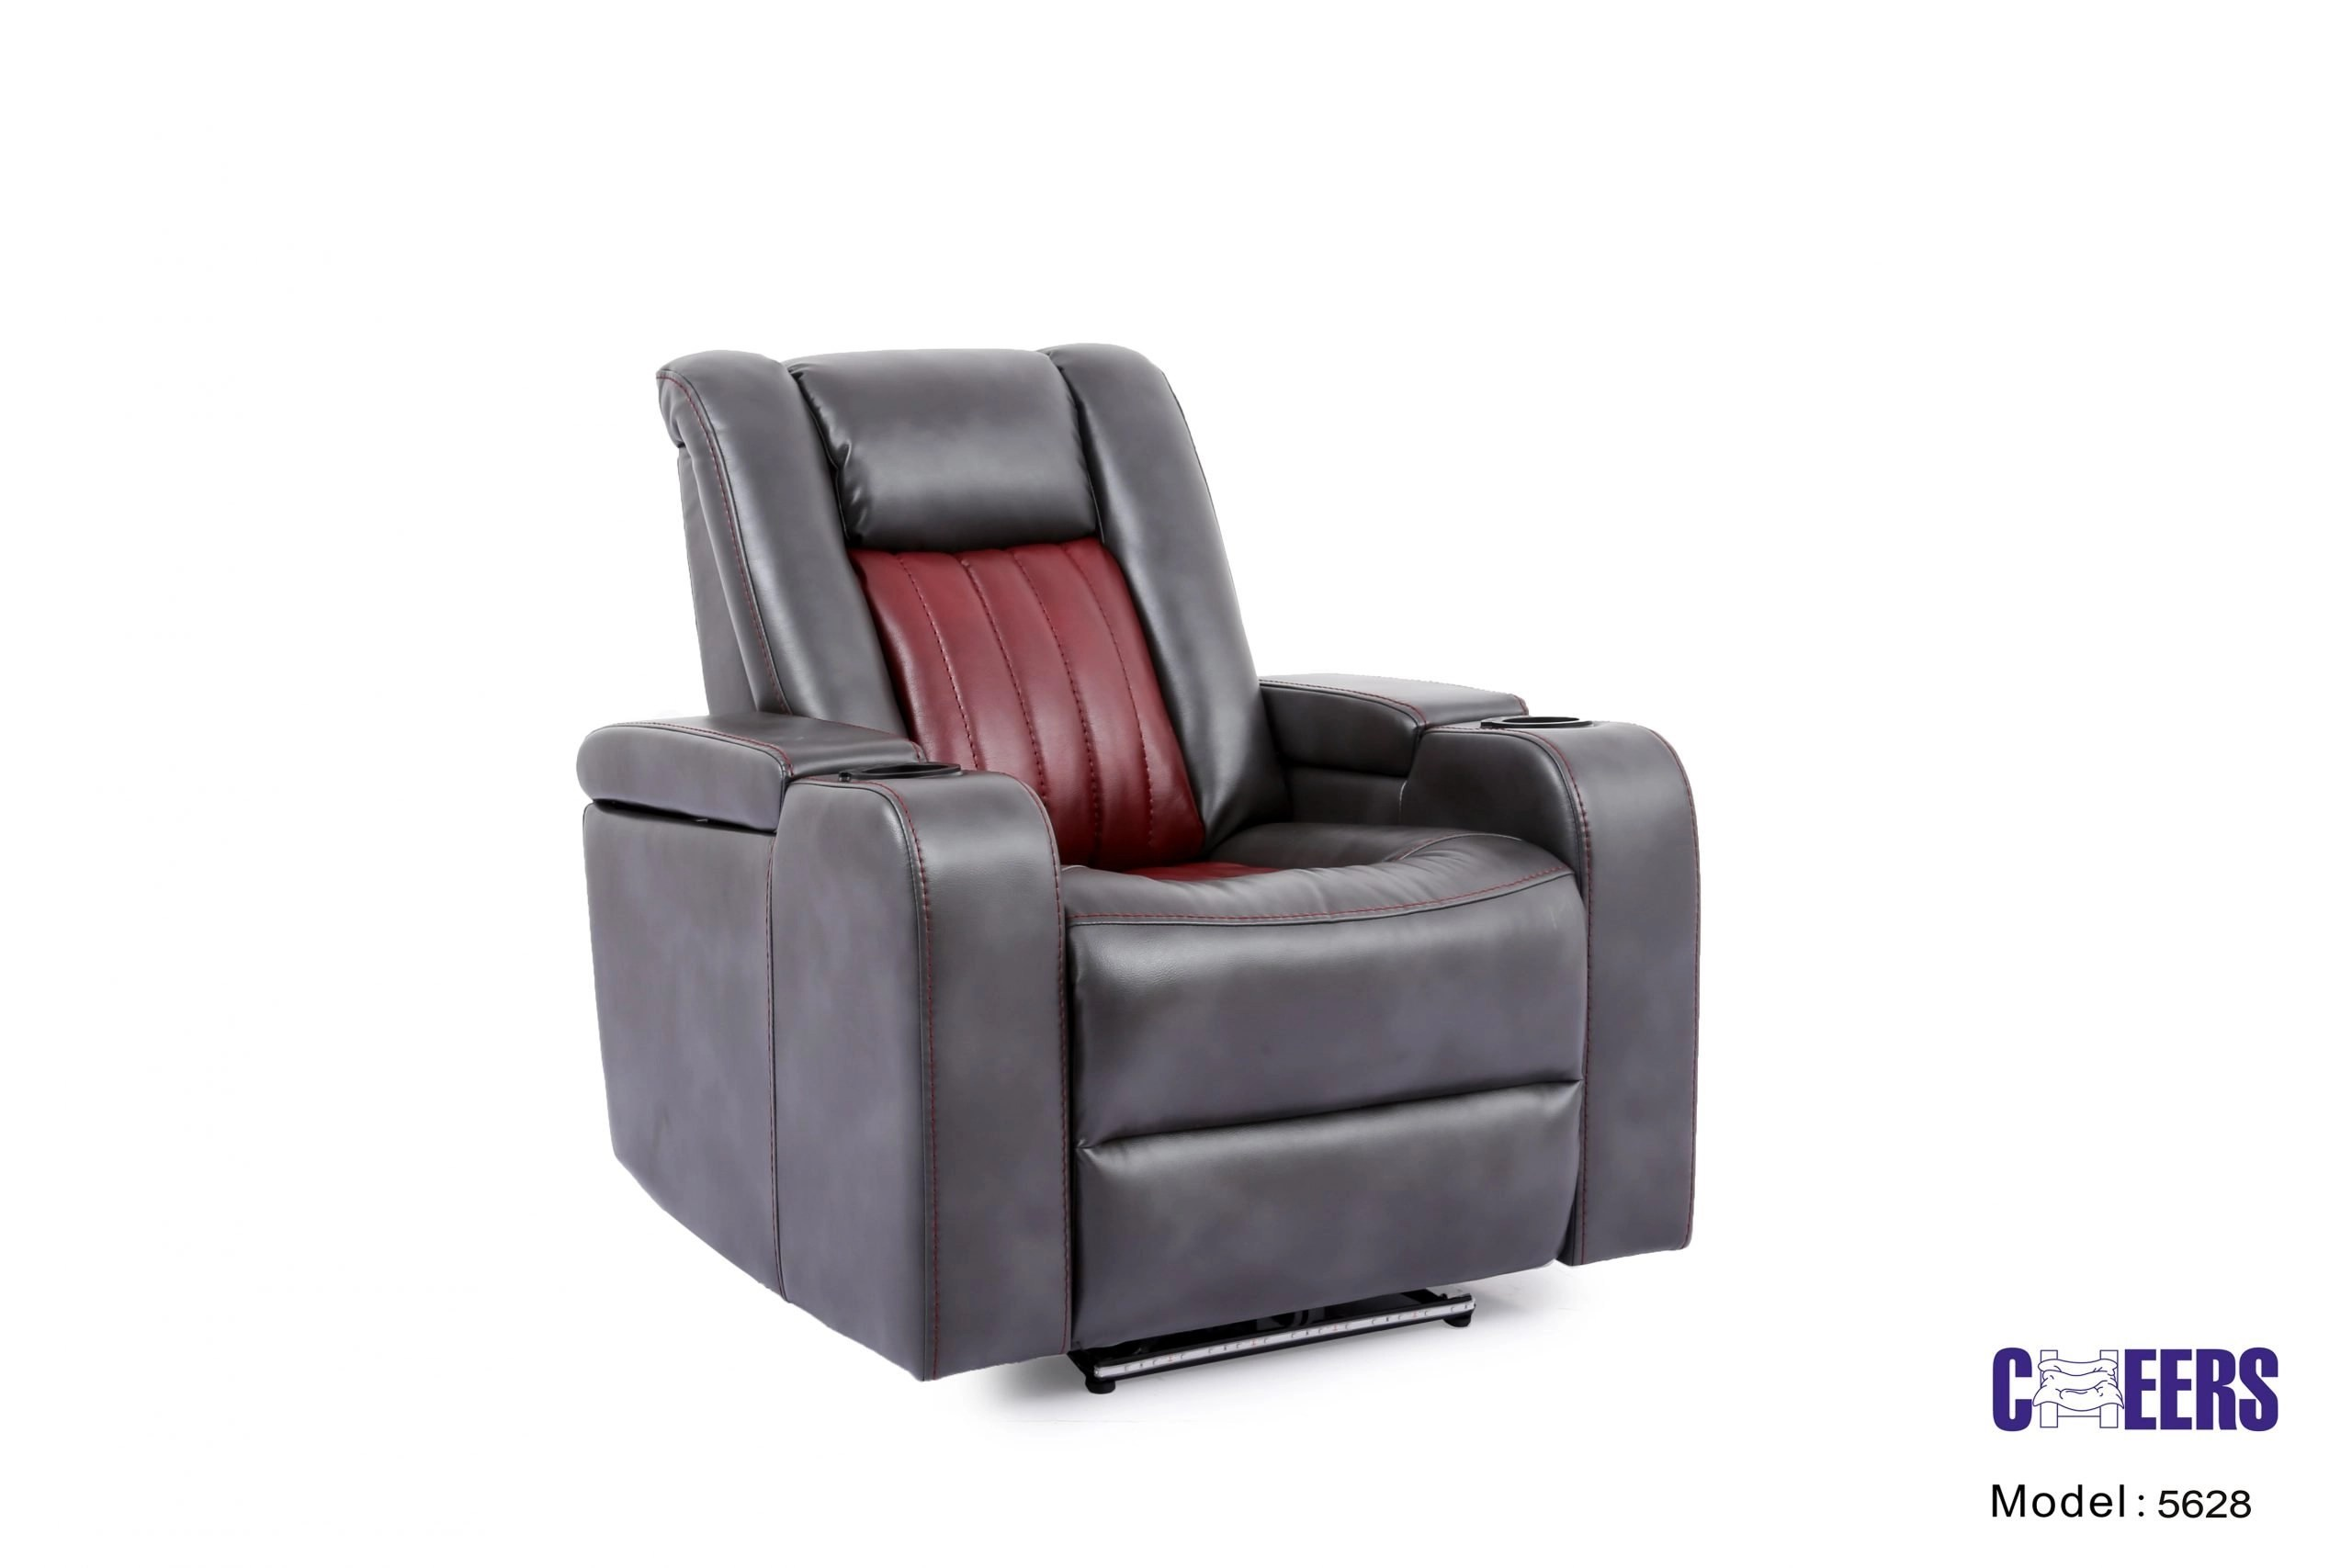 Cheers Gray and Red Fabric Power 1-Seater Sofa with USB